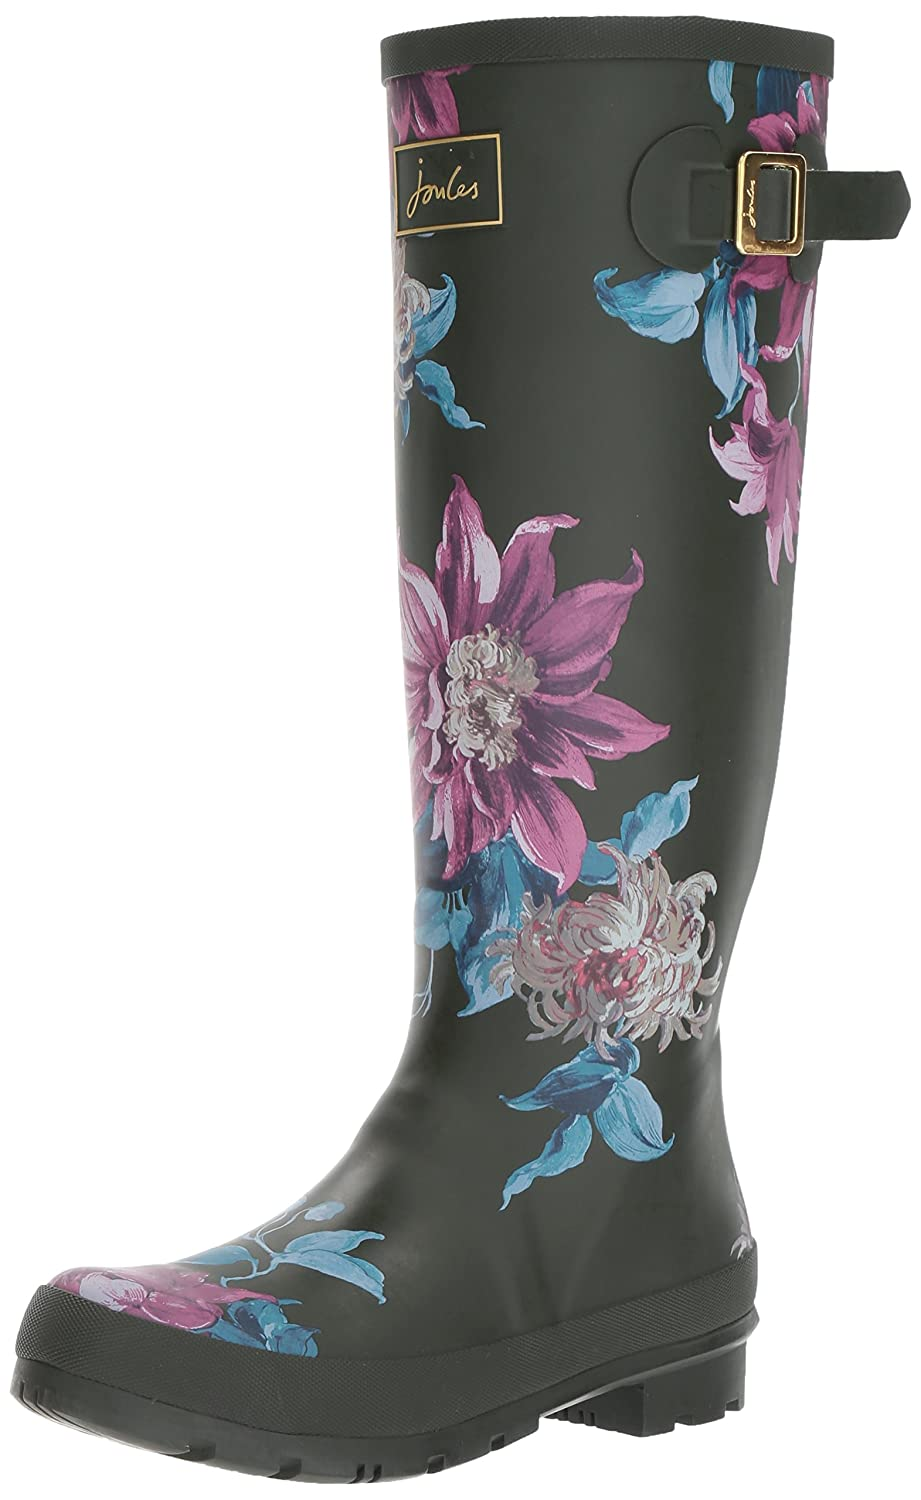 Joules Women's Welly Print Rain Boot B06X3VTYXW 5 B(M) US|Olive Clemantis